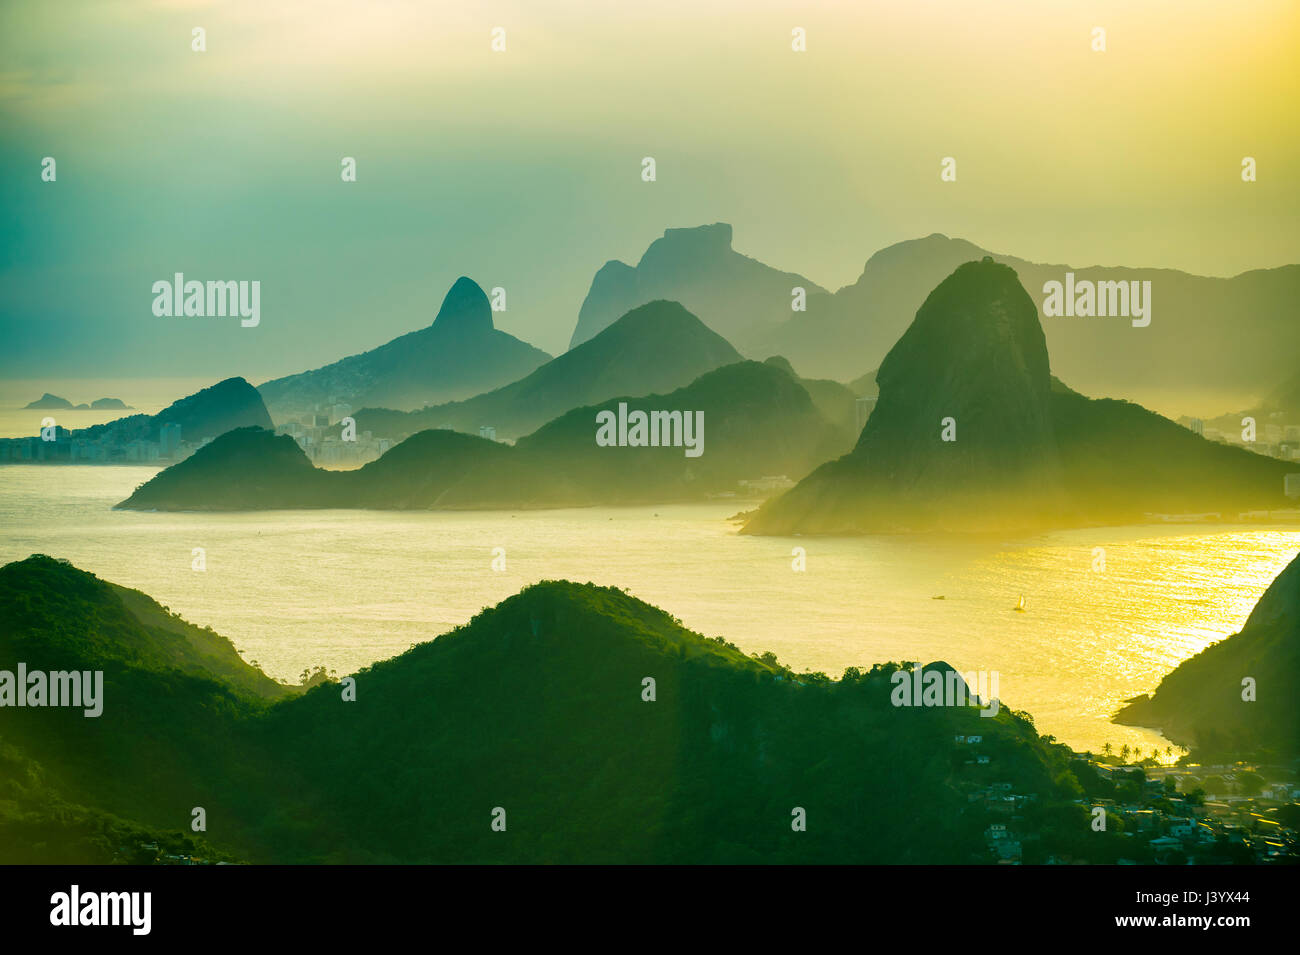 Golden sunset scenic view of the mountainous skyline of Rio de Janeiro, Brazil with Guanabara Bay - Stock Image